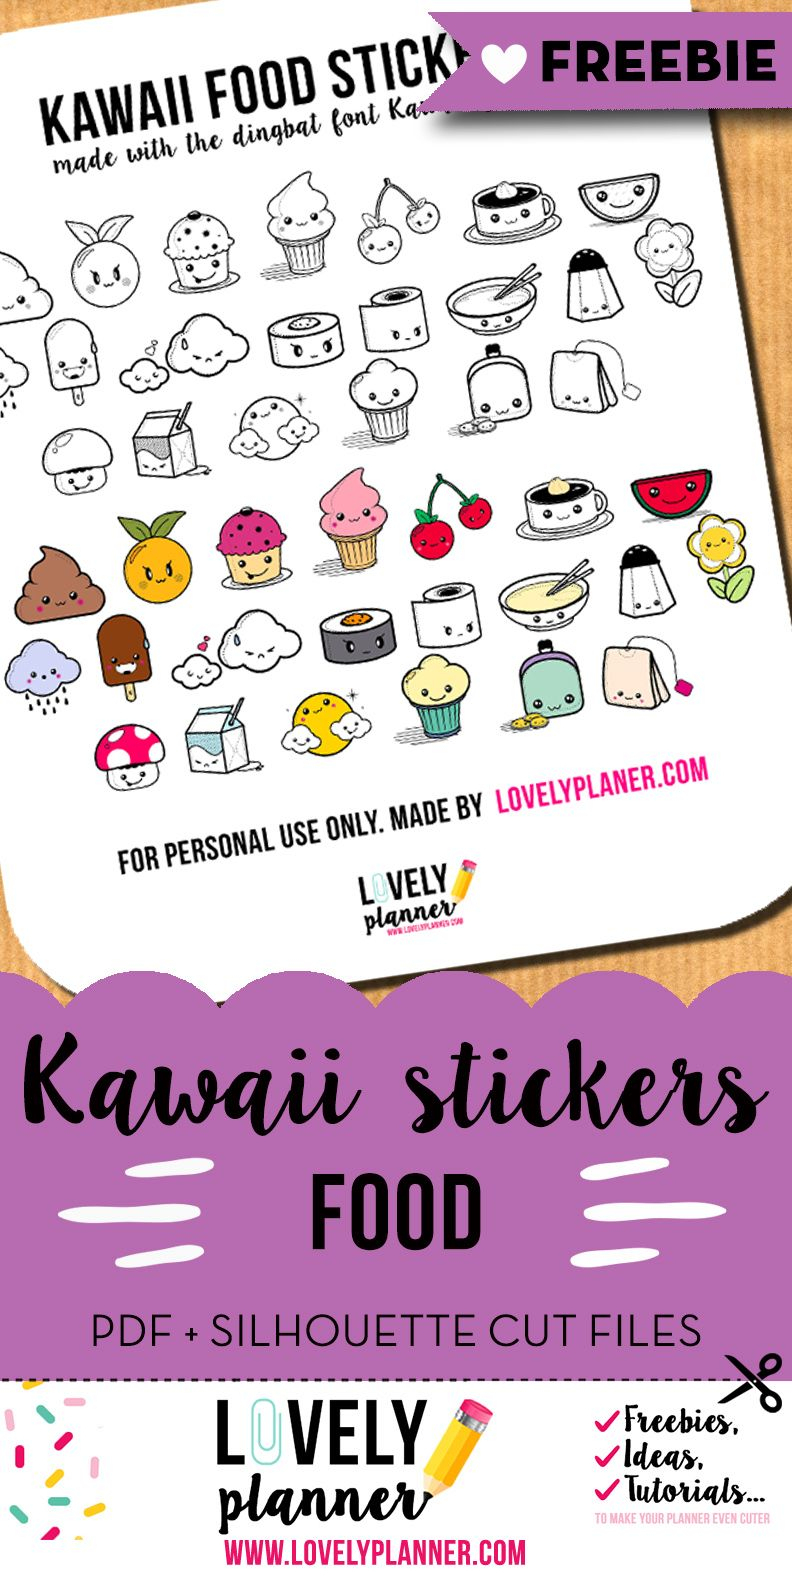 Free Printable Kawaii Food Planner Stickers From Lovelyplanner - Free Printable Kawaii Stickers